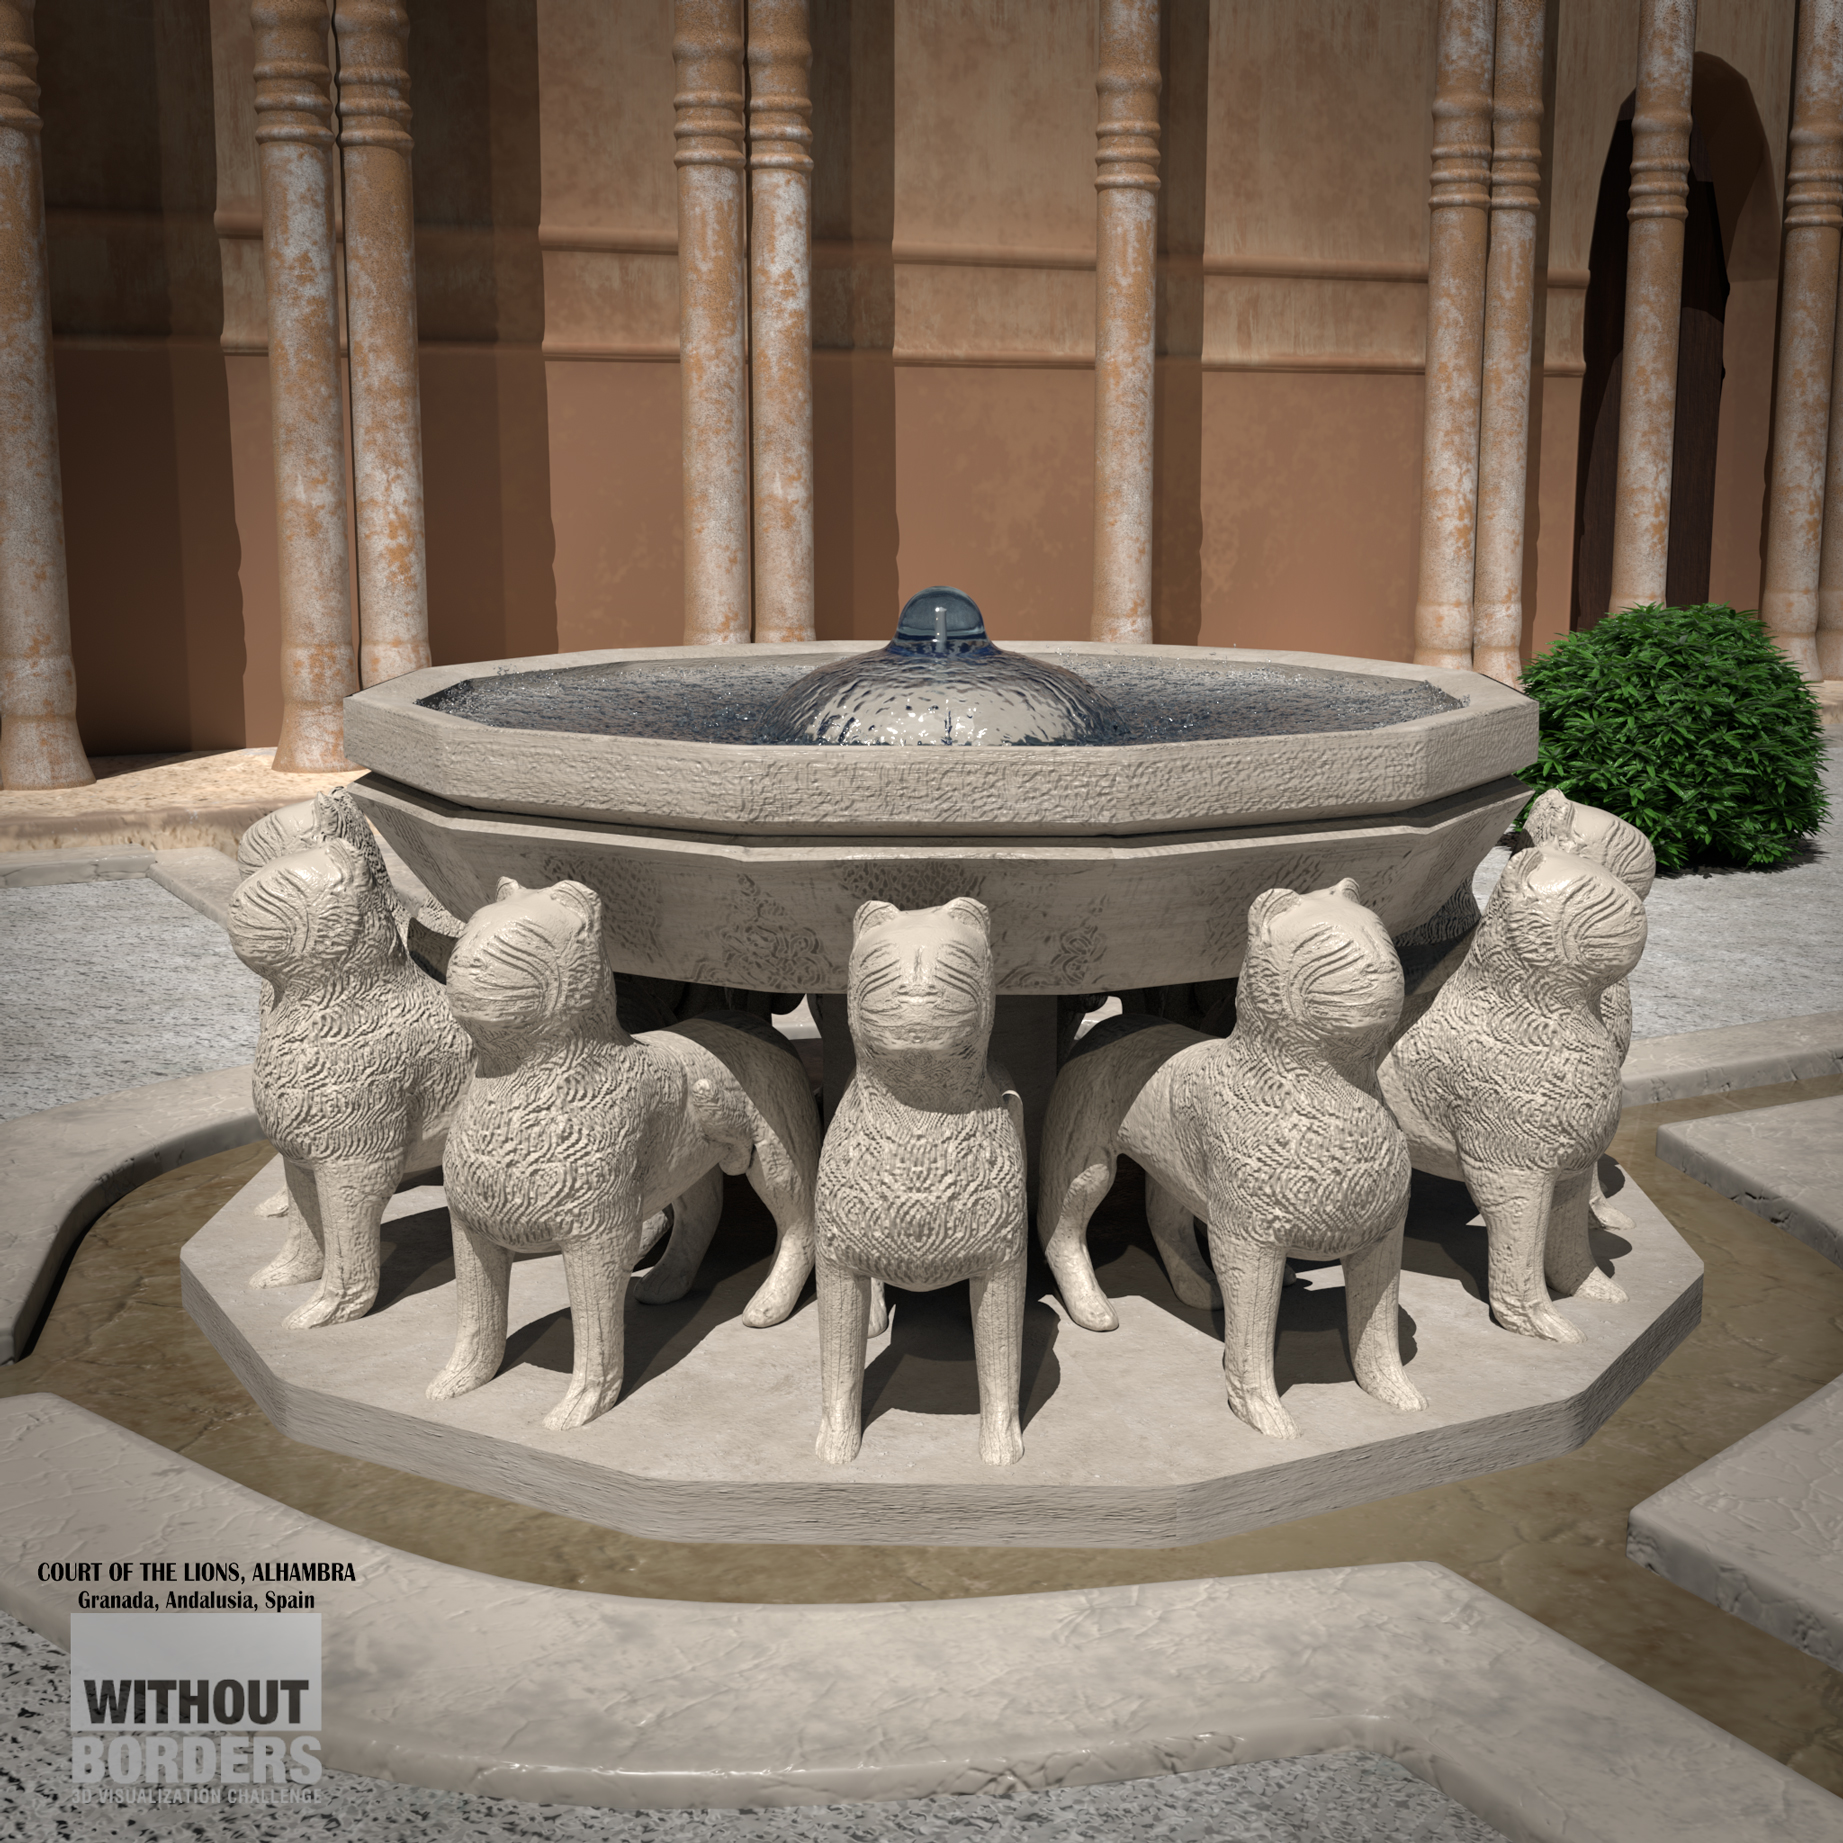 The court of Lions, Alhambra 3d art